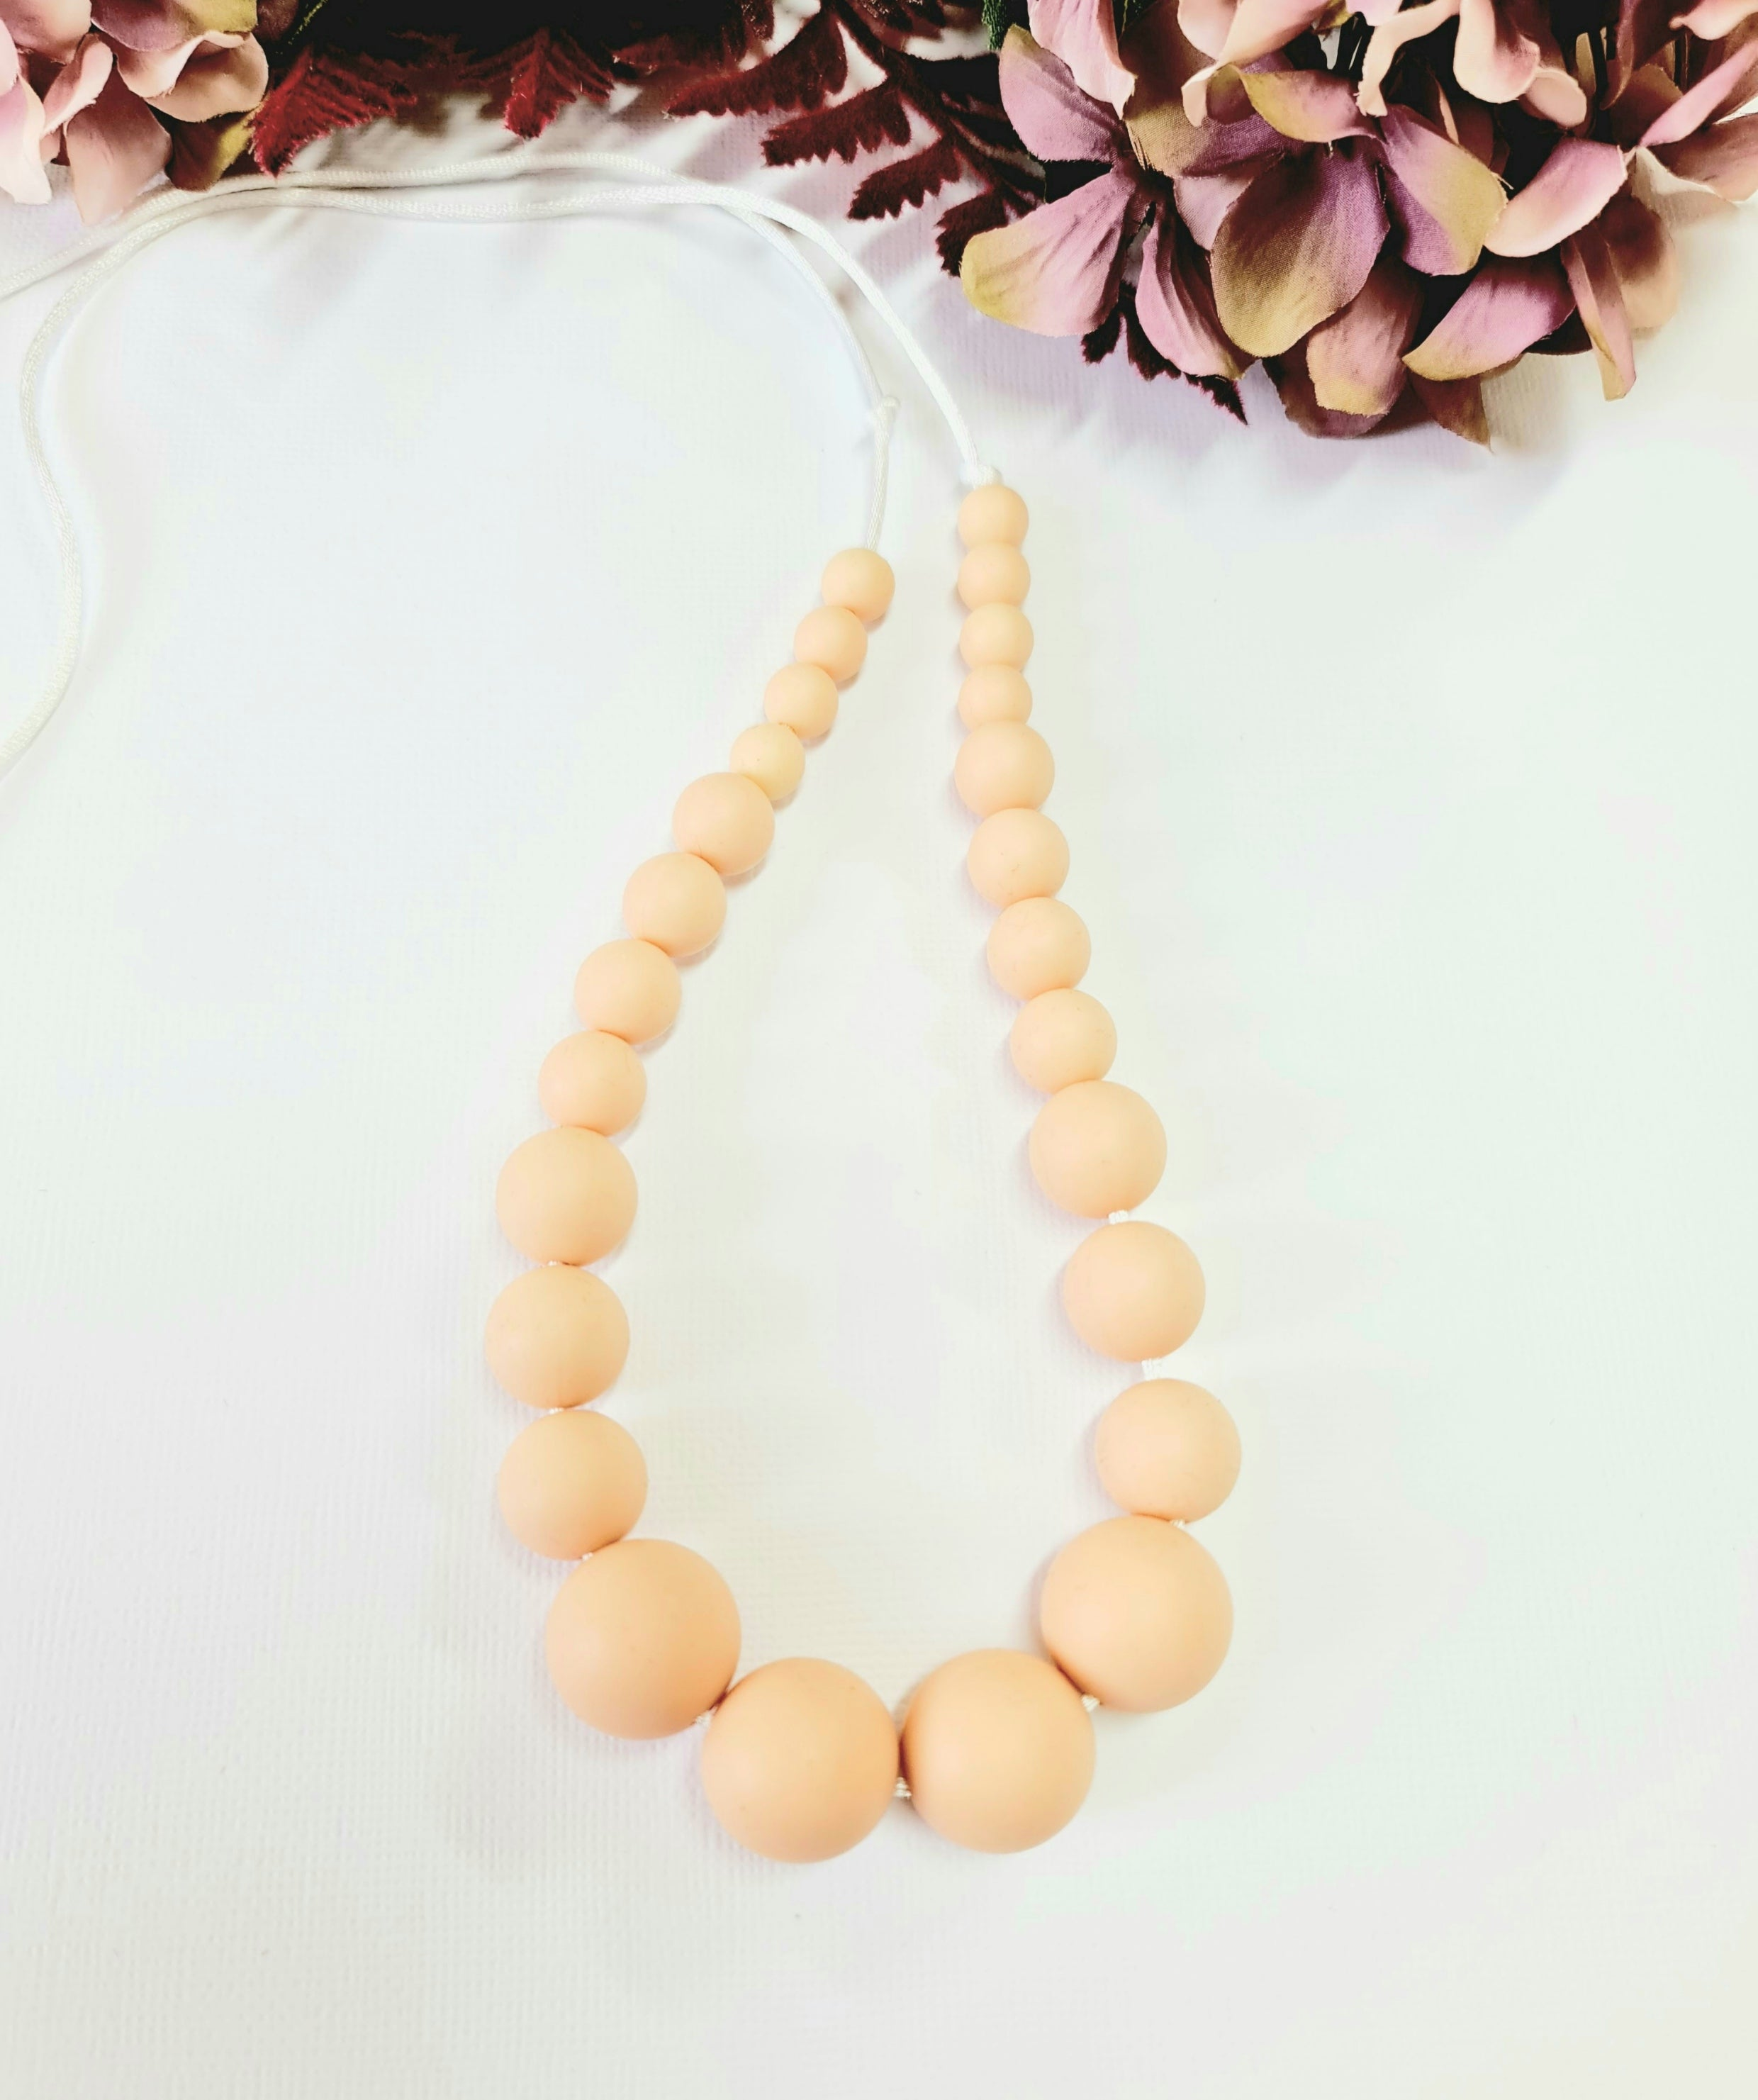 Beige Silicone Bead Necklace